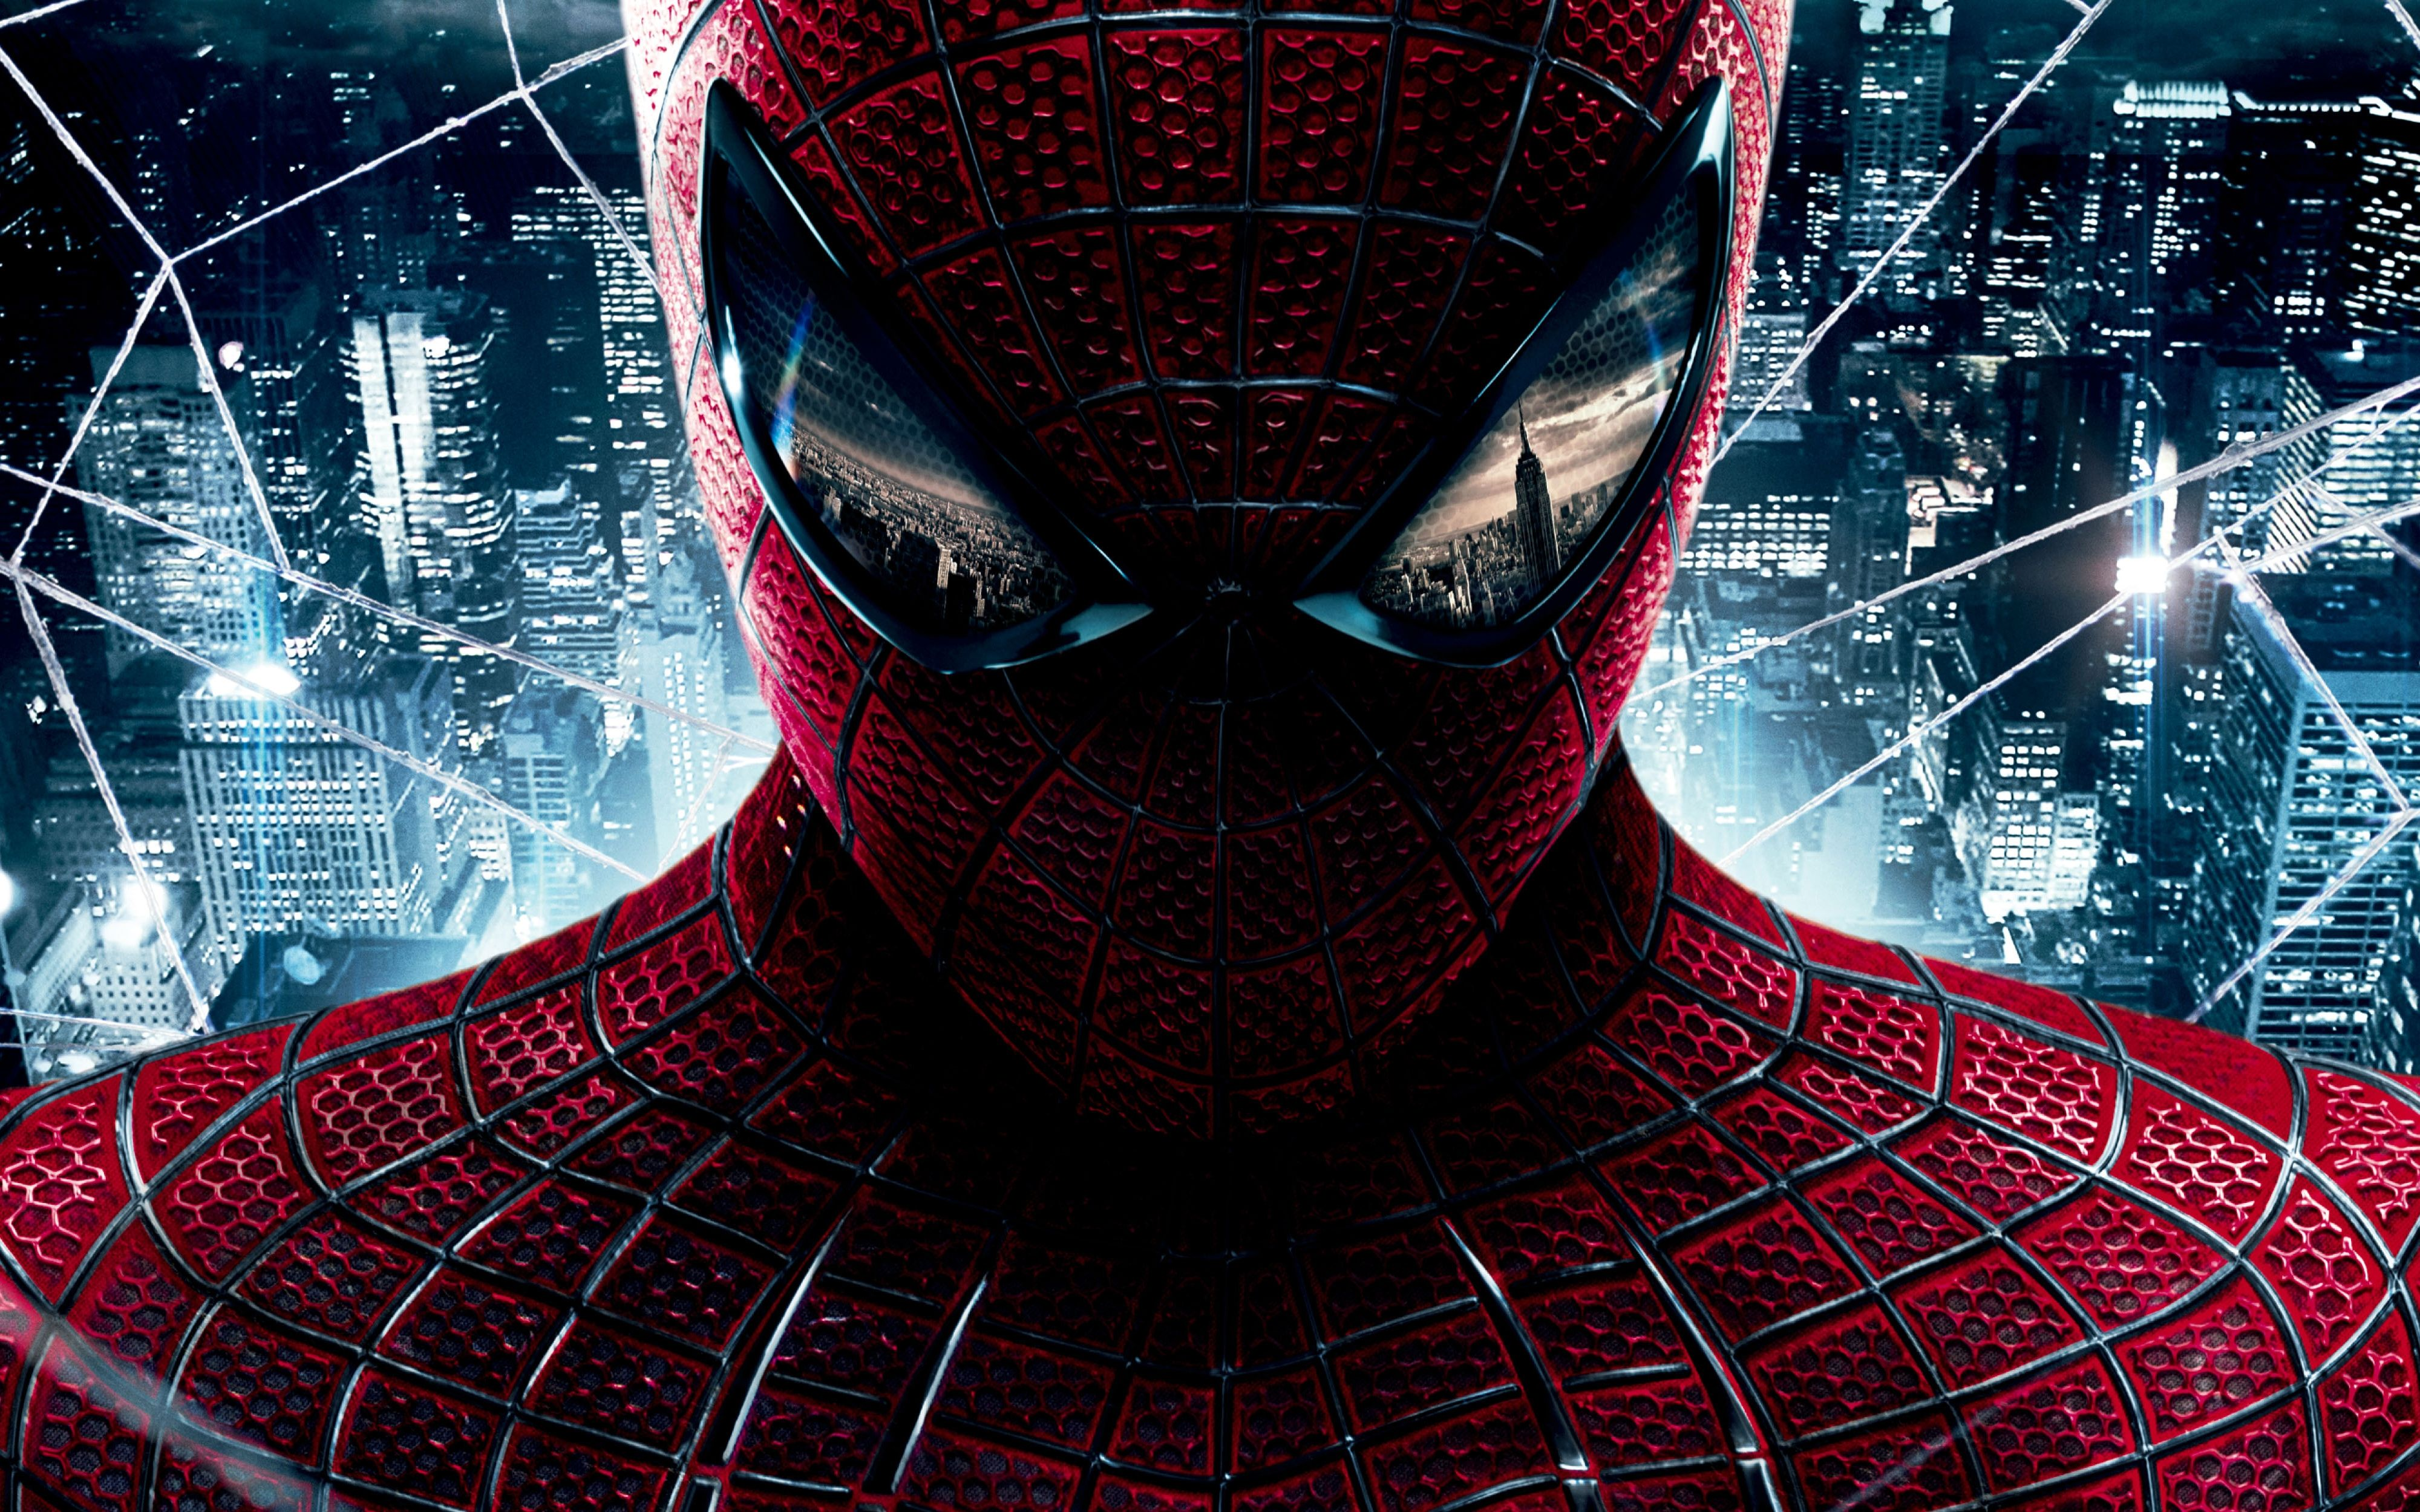 Spiderman New Wallpapers For Desk Pc Tablet Cellphone